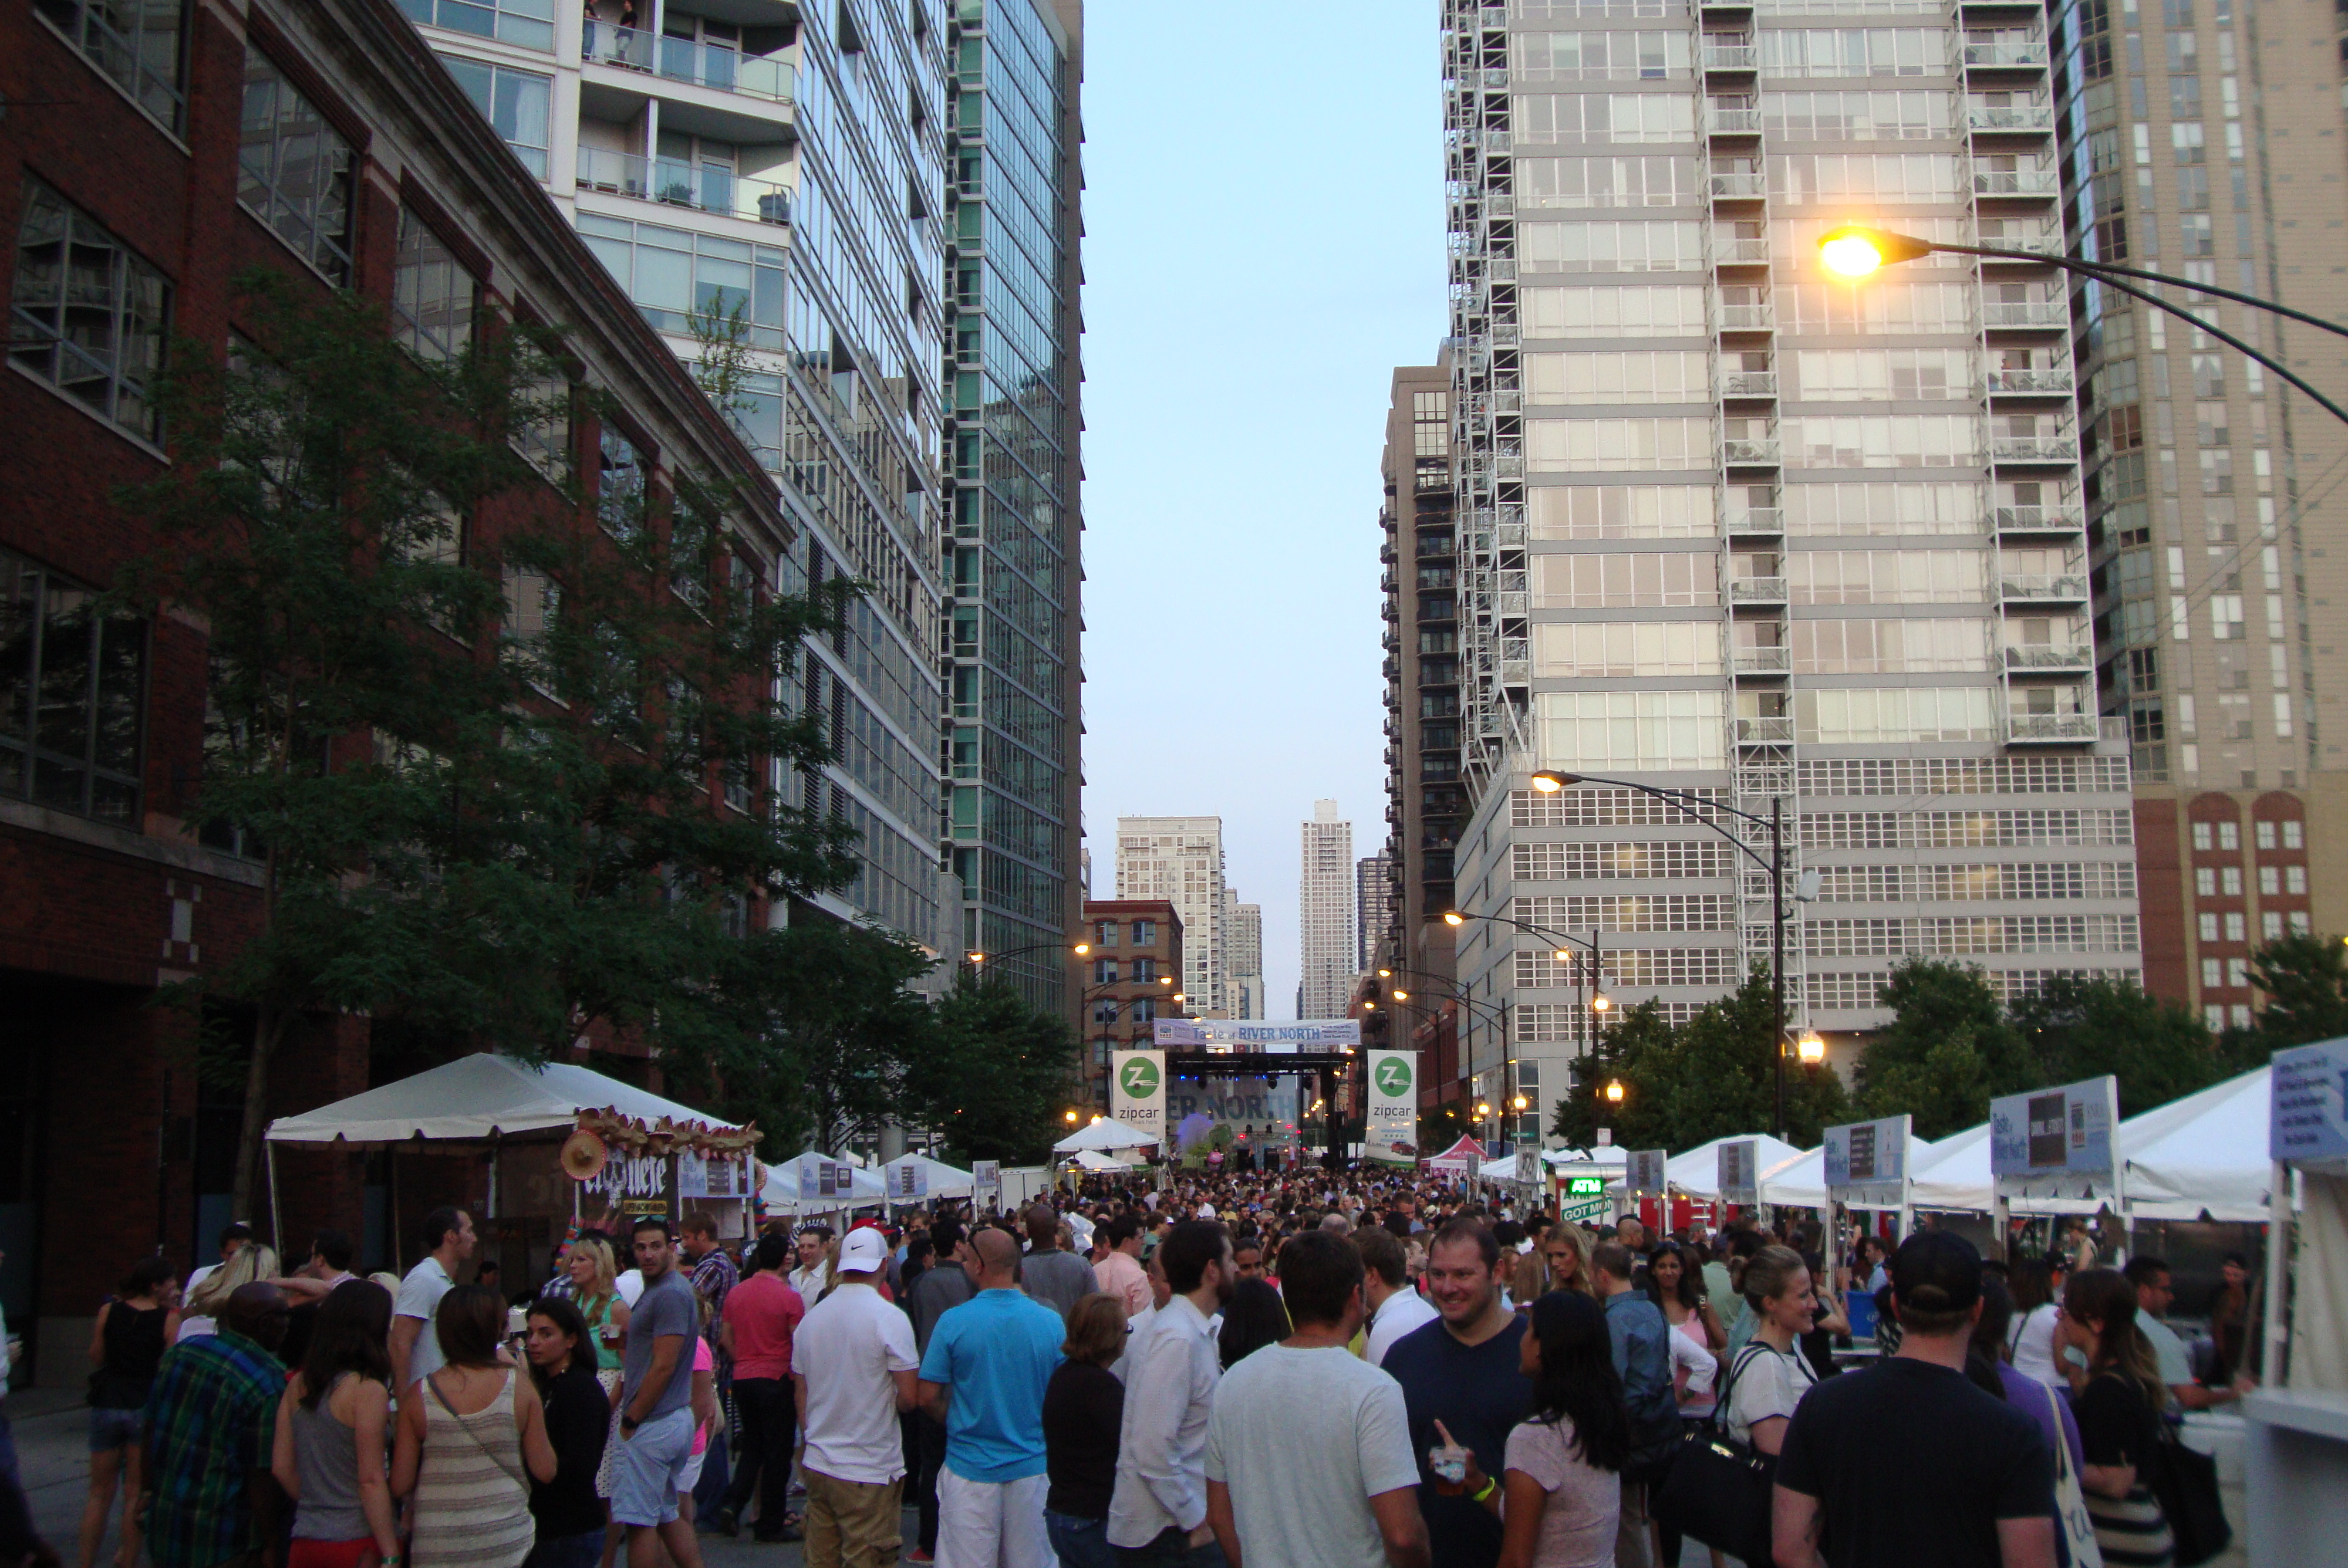 Taste of Chicago turned 1st profit in six years | Midwest Shows, Fairs ...